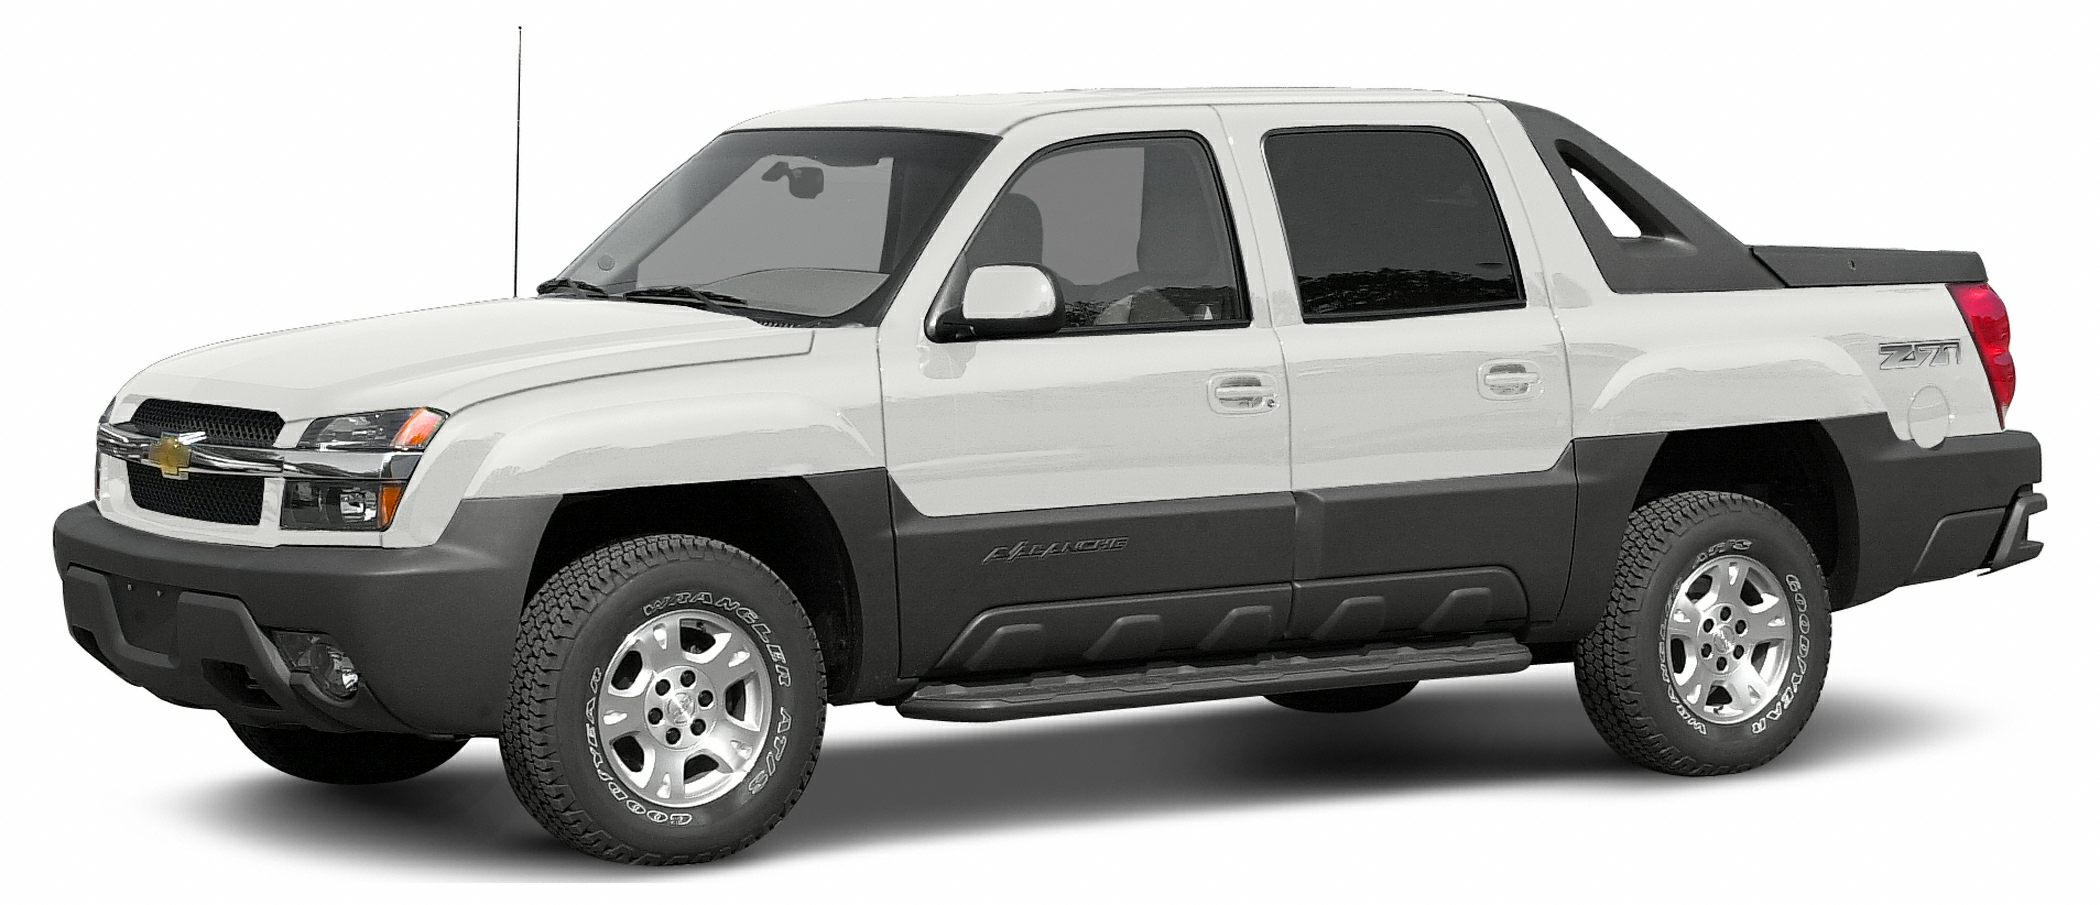 2003 Chevrolet Avalanche 1500 ALL PRICES ARE CASH PRICES UNLESS STATED AND DO NOT REFLECT FINANCIN